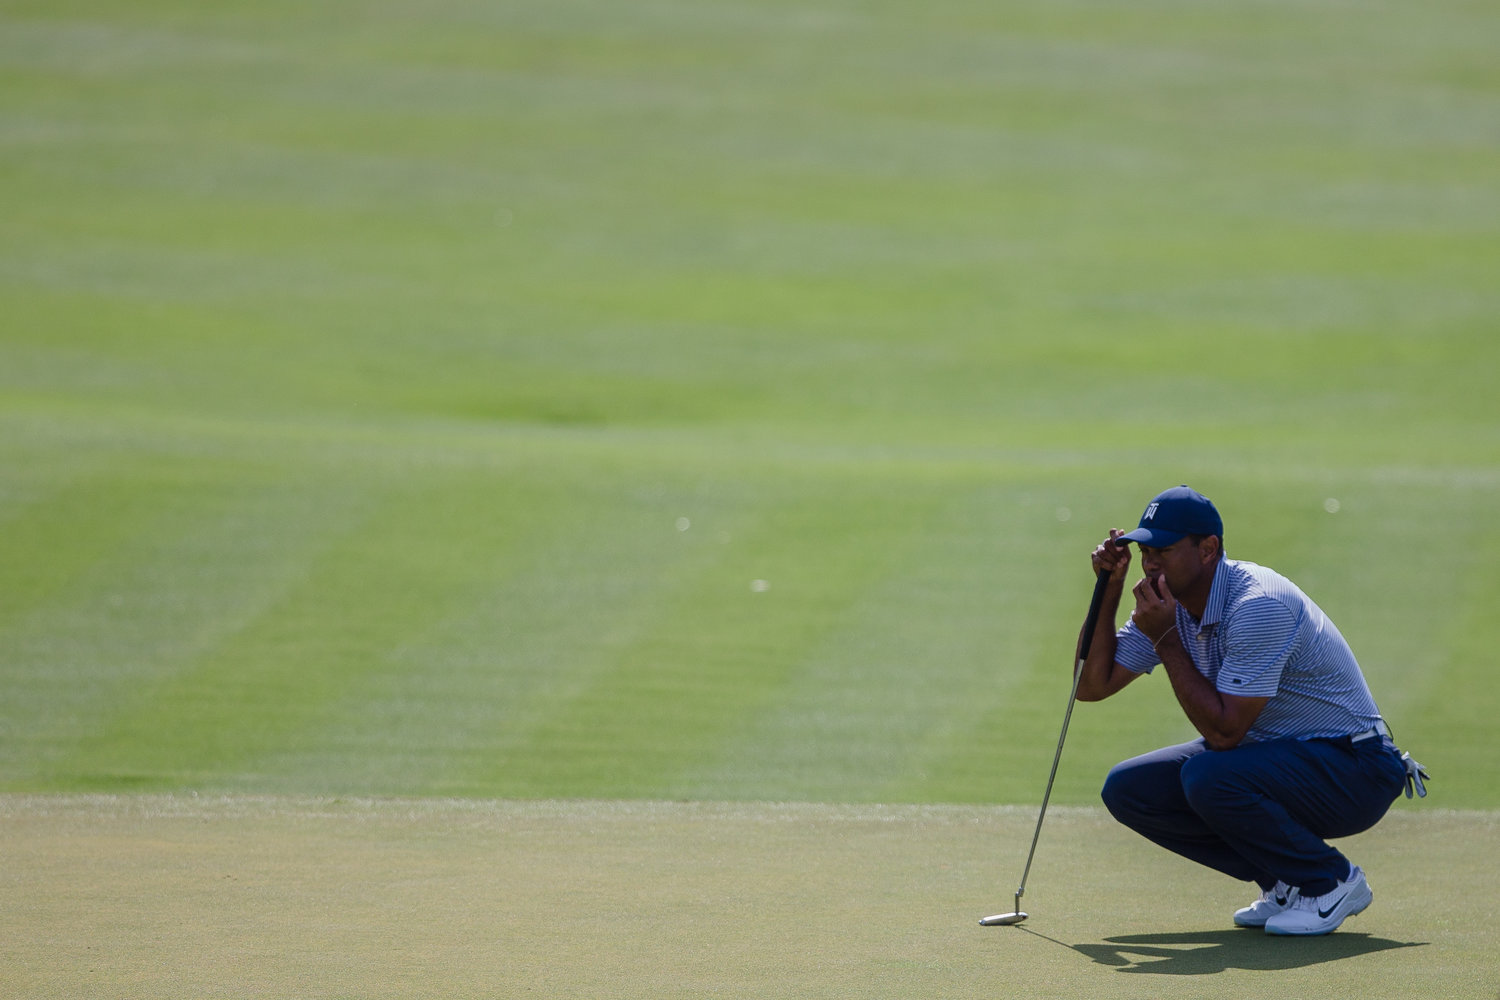 Tiger Woods eyes up a shot Friday at THE PLAYERS.